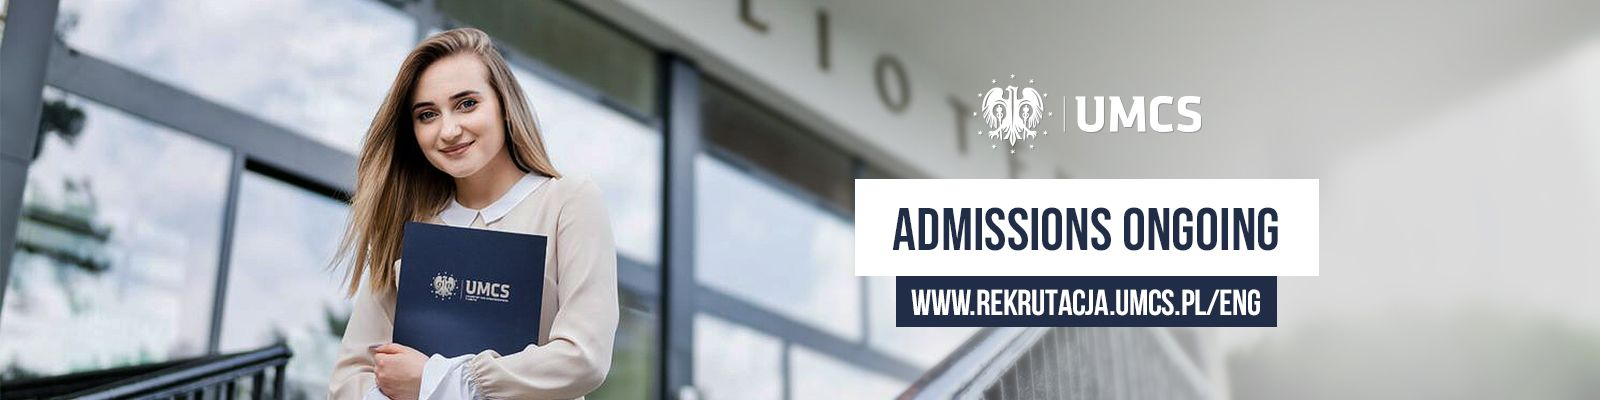 Admissions ongoing